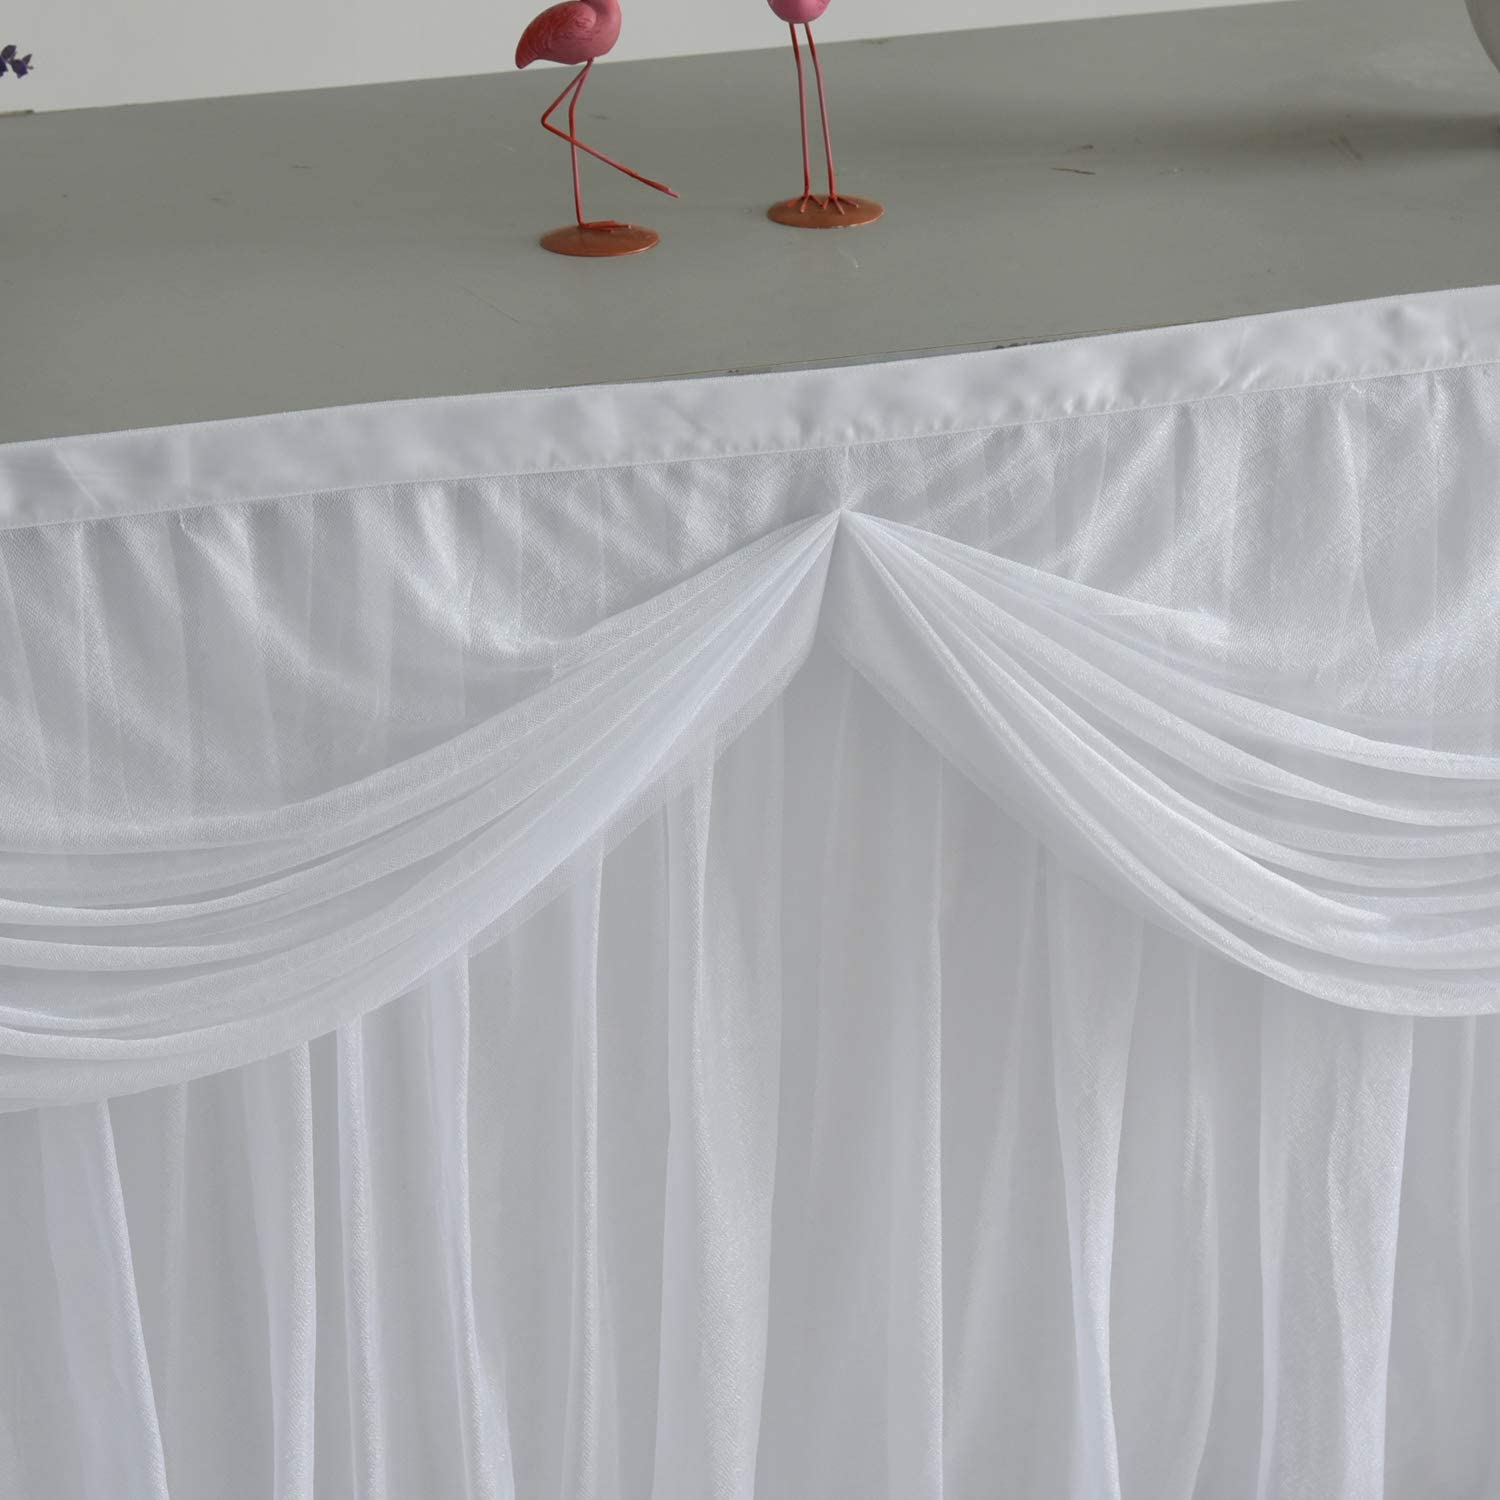 9FT White Tulle Table Skirt Tutu Table Skirting With Satin Double Drape for Rectangle Table or Round Table for Wedding,Birthday Party,Baby Shower L108inH30in